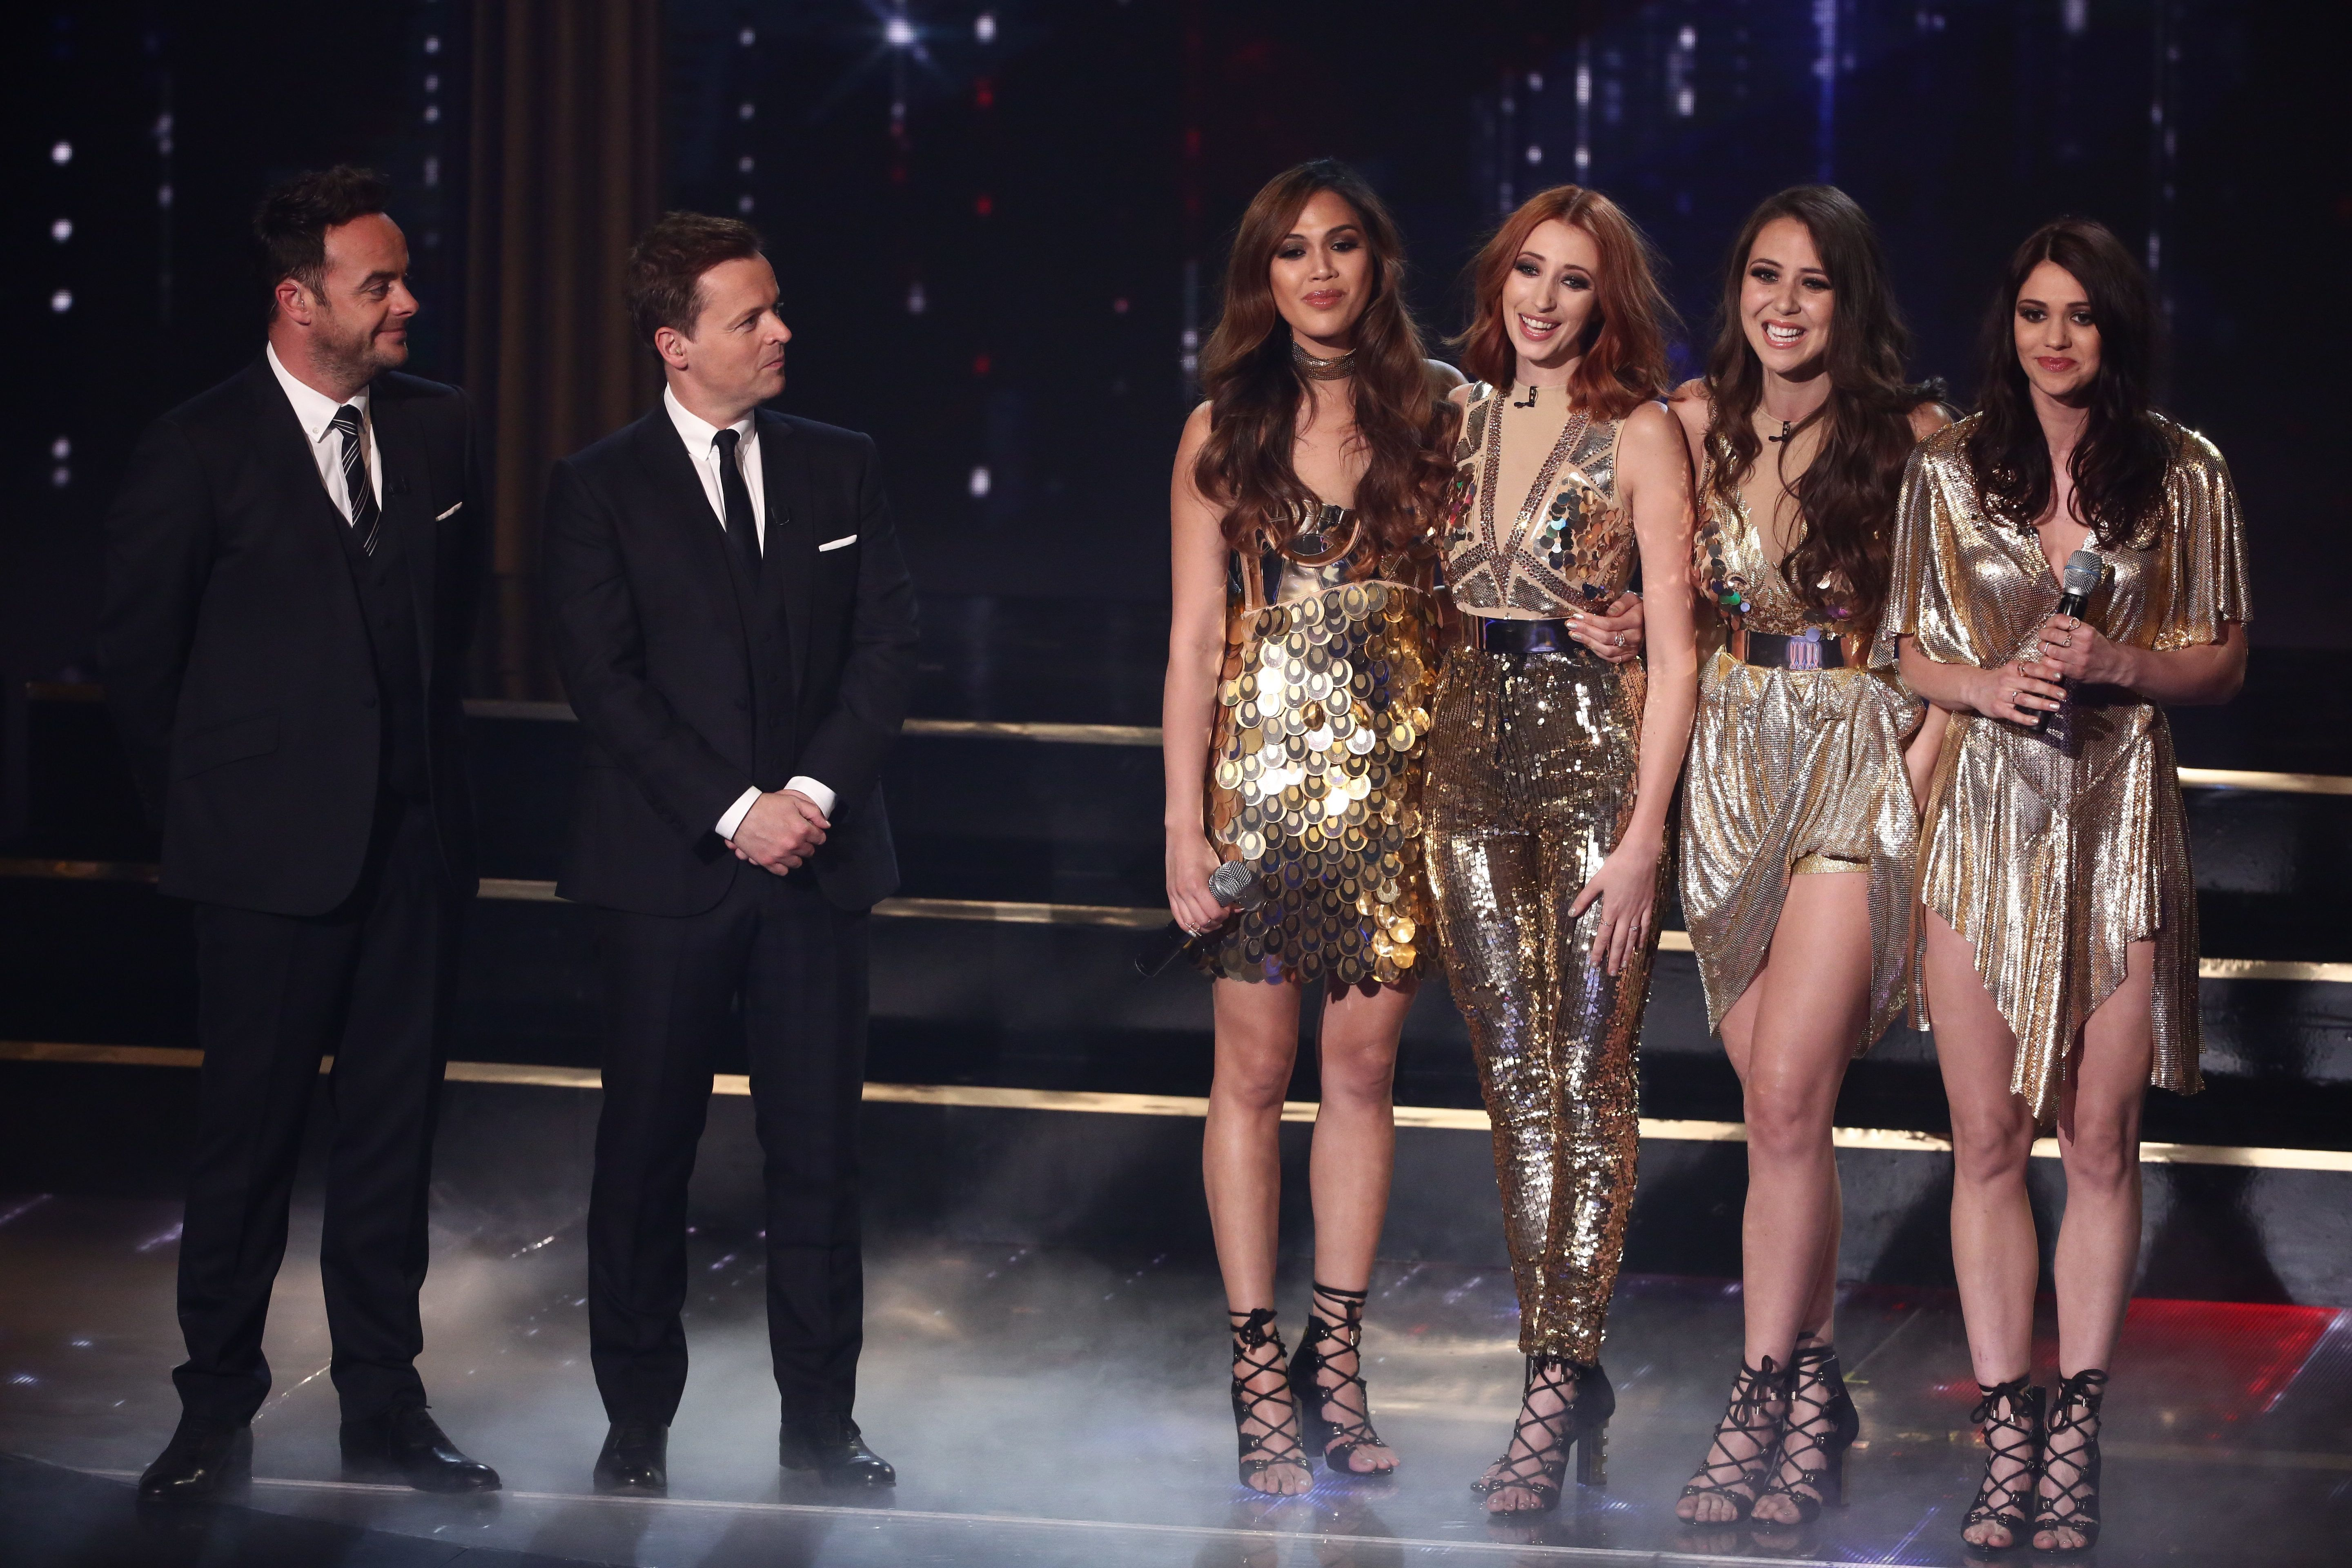 Declan Donnelly Creeps Out 'BGT' Viewers Over Zyrah Rose